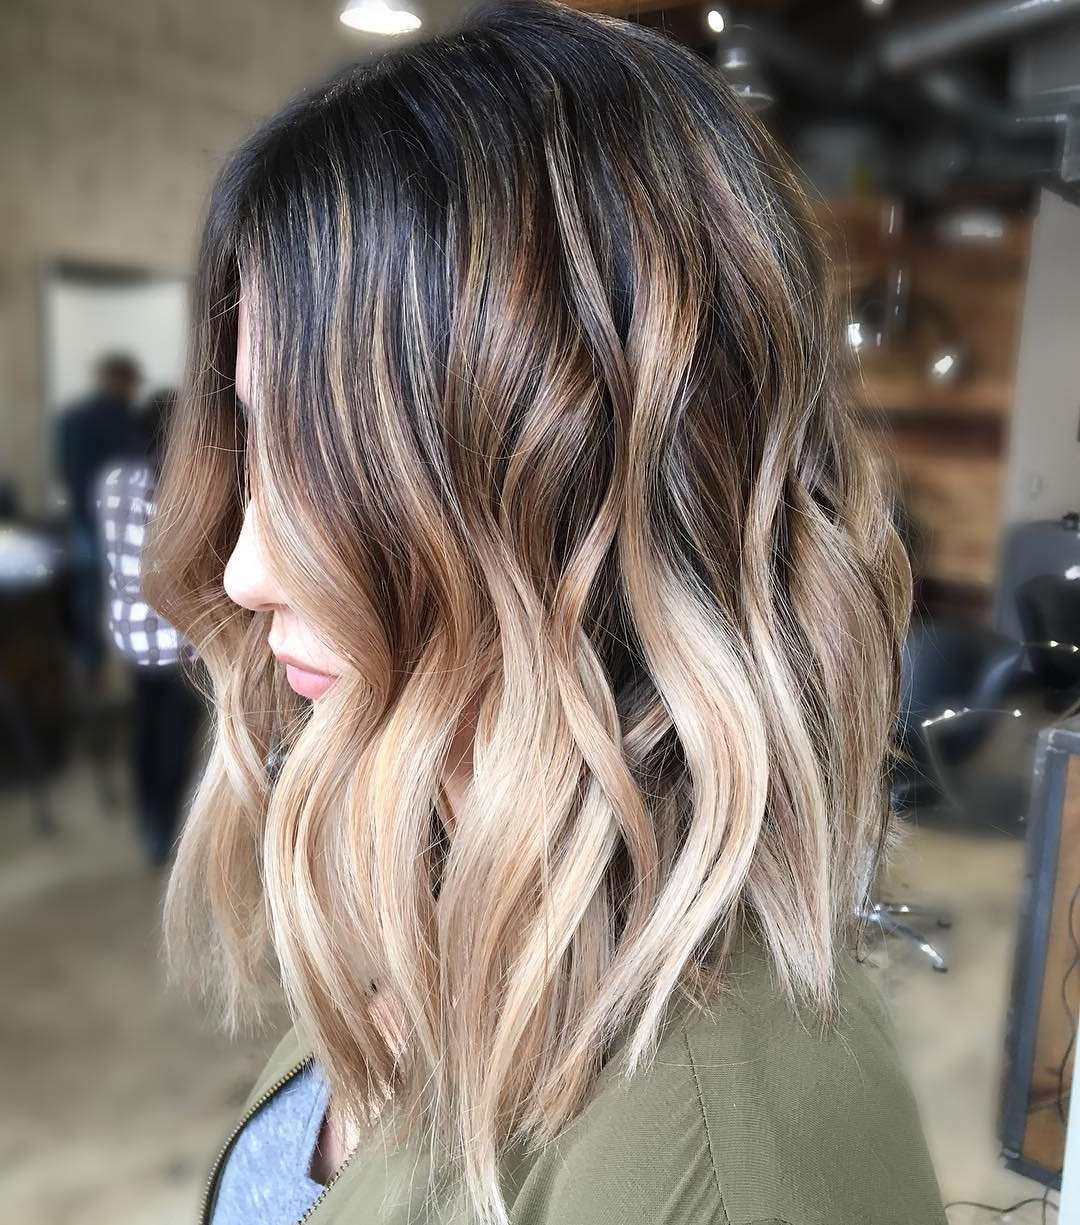 Most Recently Released Long Layered Ombre Hairstyles With 10 Balayage Ombre Hair Styles For Shoulder Length Hair, Women (View 14 of 20)